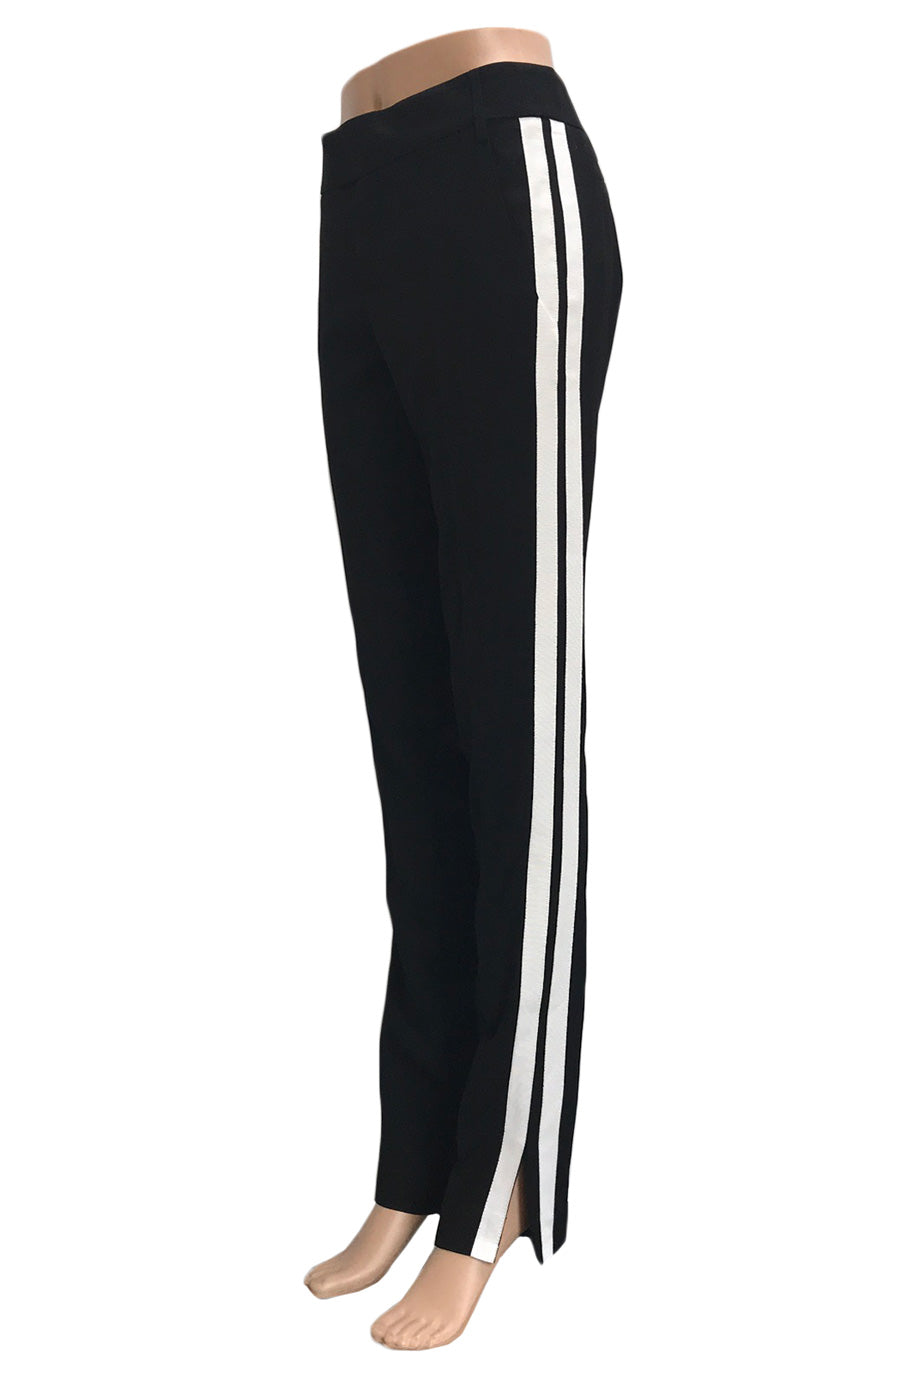 Smythe Black Straight Leg Pants + White Racing Stripes / Sz 4-Style Therapy